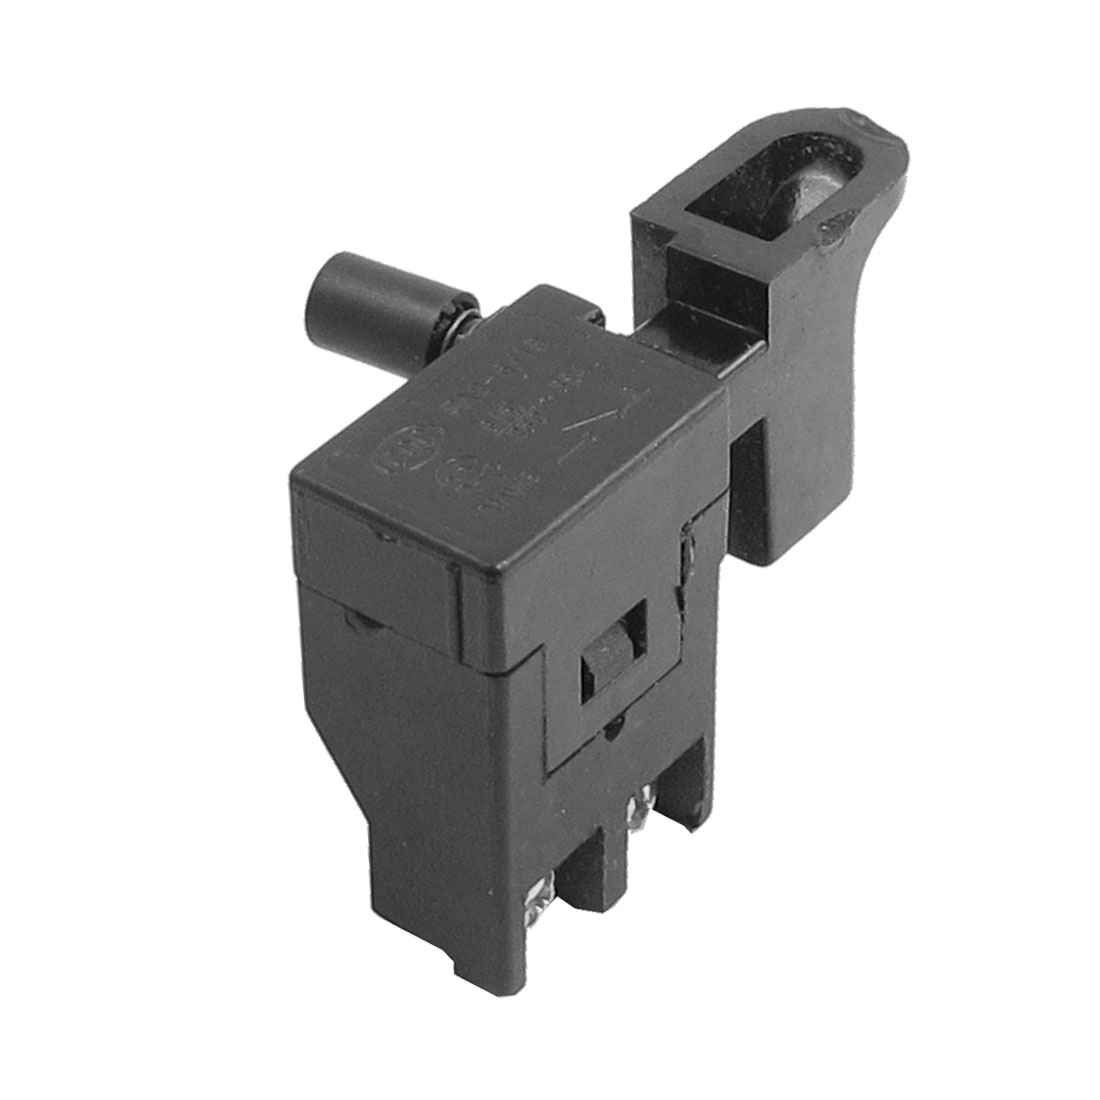 Power Tool Part SPST Lock on Trigger Switch FA2-6/1B for Makite